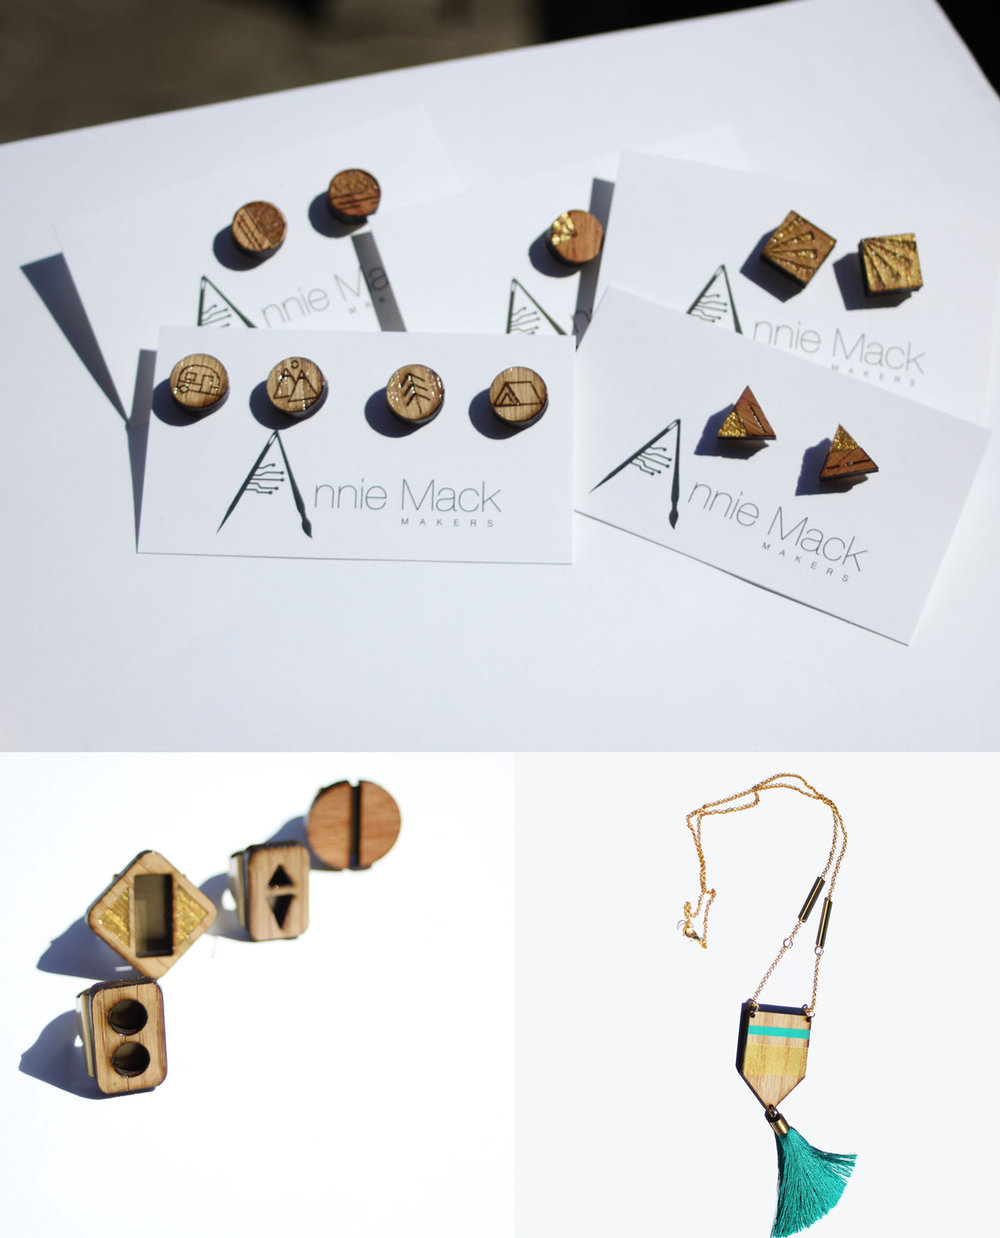 Jewellery - Annie Mack Makers - Laser cut earrings, rings, and necklaces